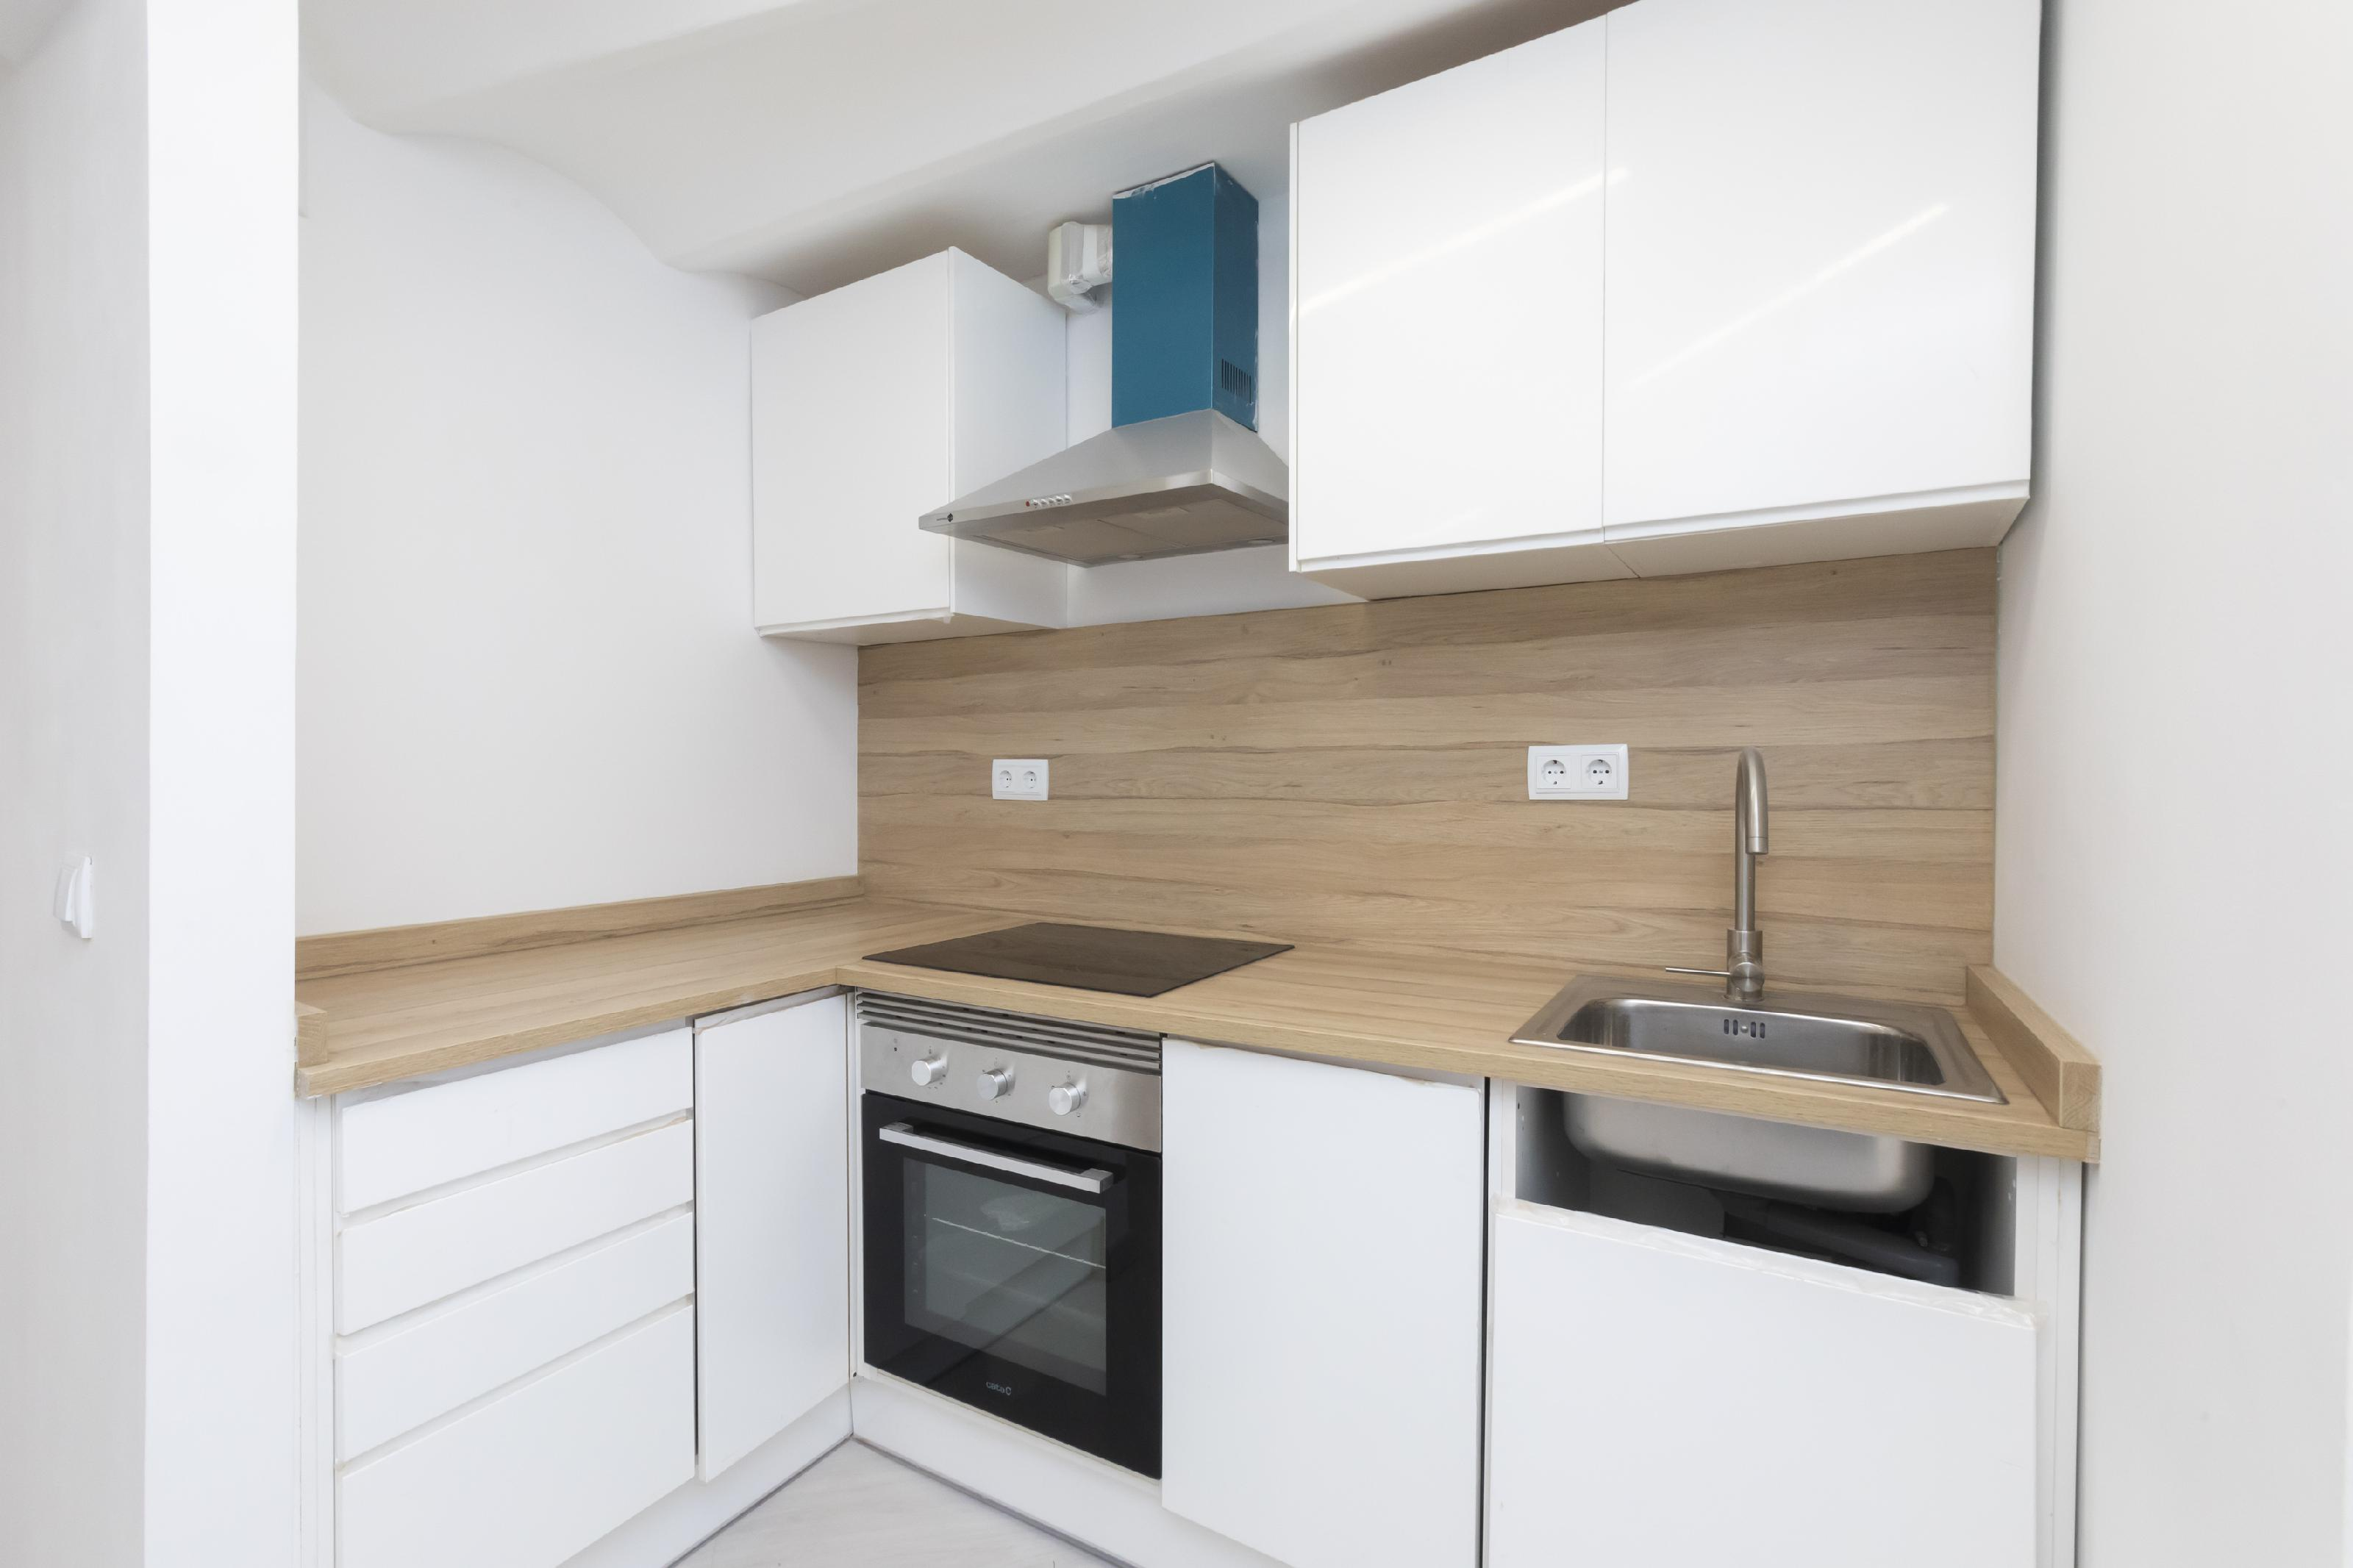 242978 Flat for sale in Gràcia, Camp Grassot and Gràcia Nova 19